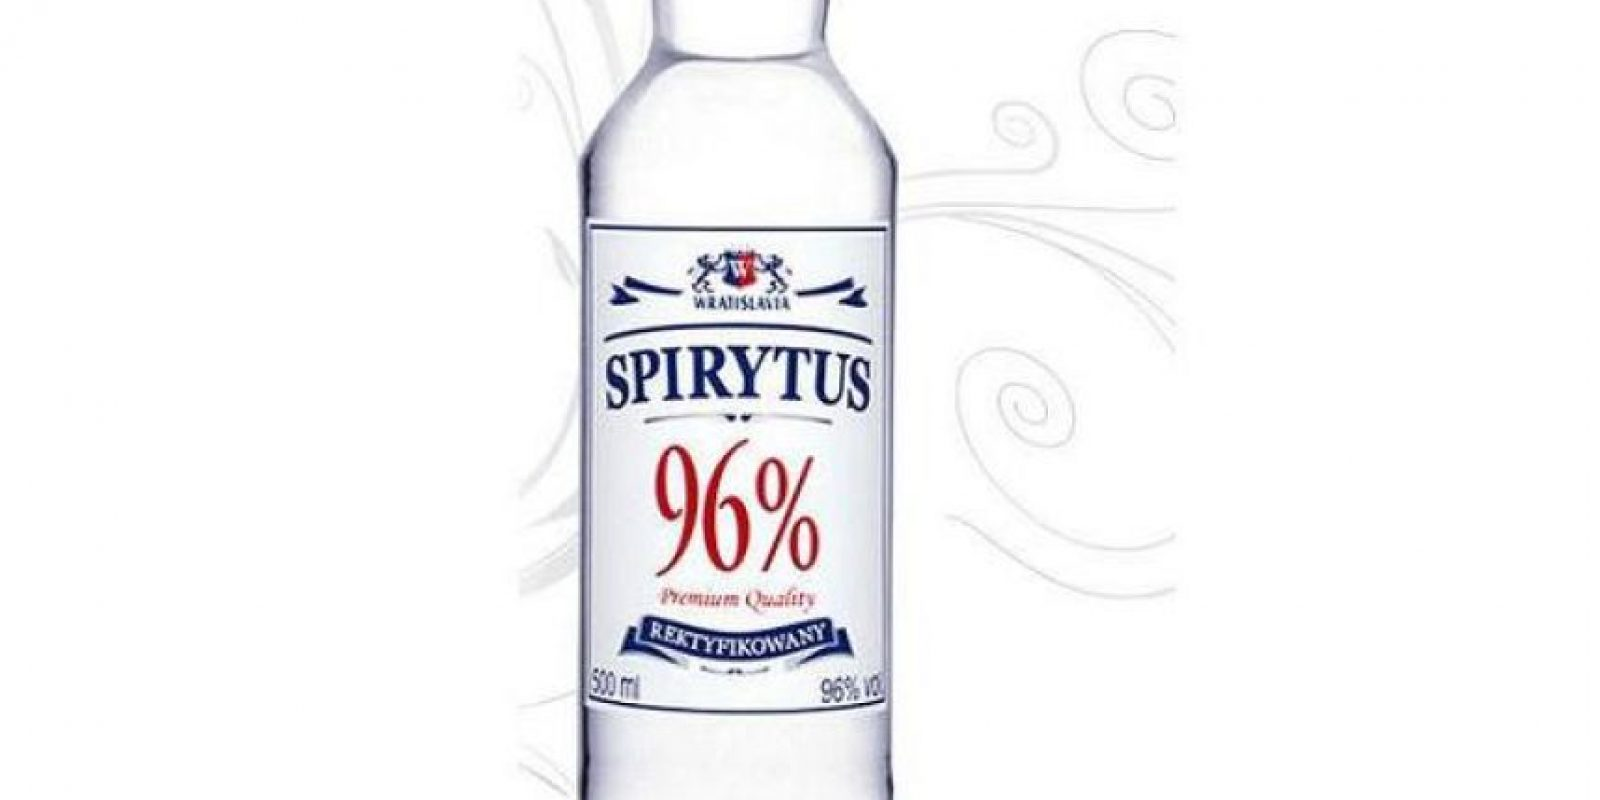 1. Vodka Spirytus Foto: Wikimedia Commons